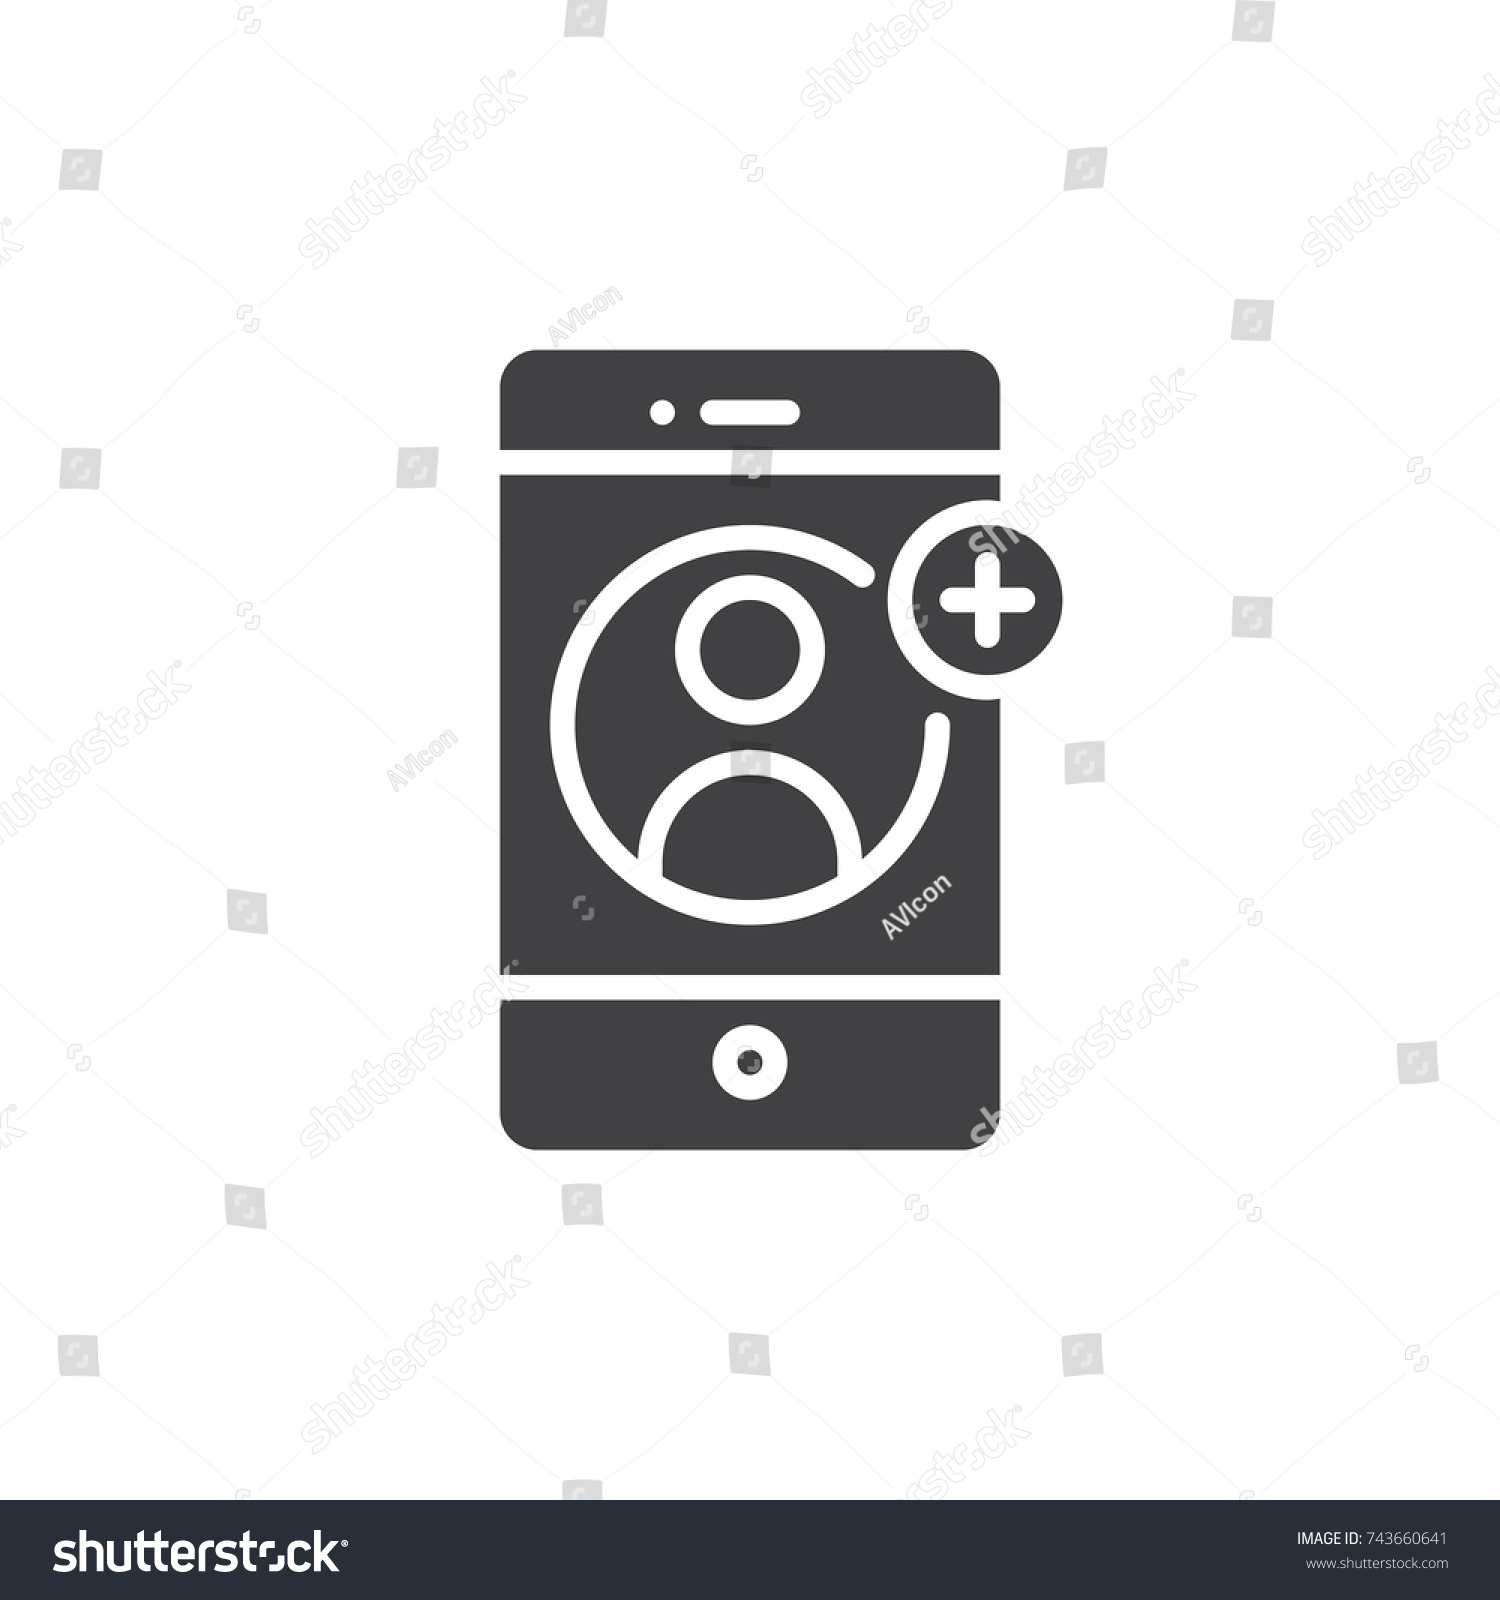 Smartphone Contact Add On Display Icon Stock Vector (Royalty Free